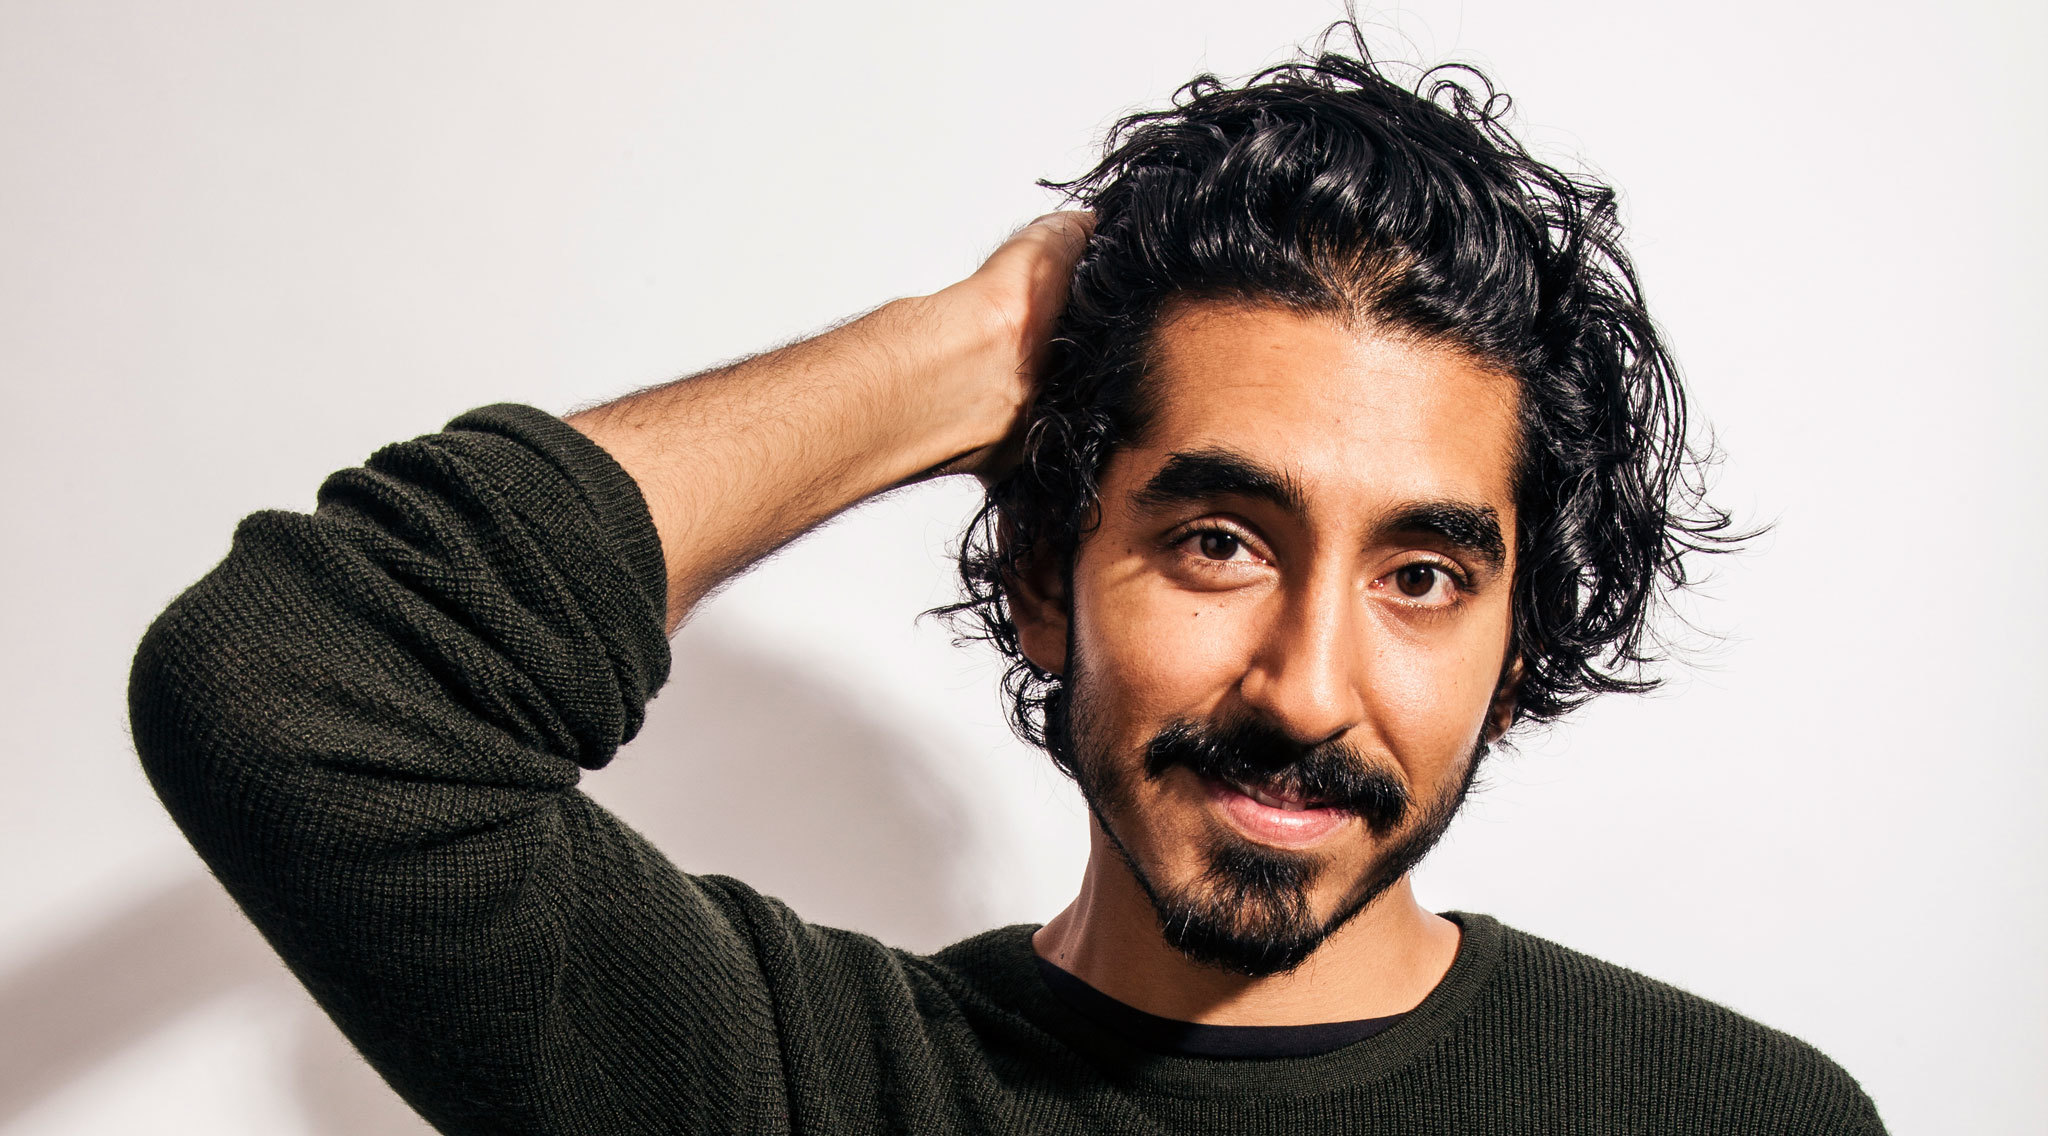 Dev Patel took his mum as his date to the Oscars